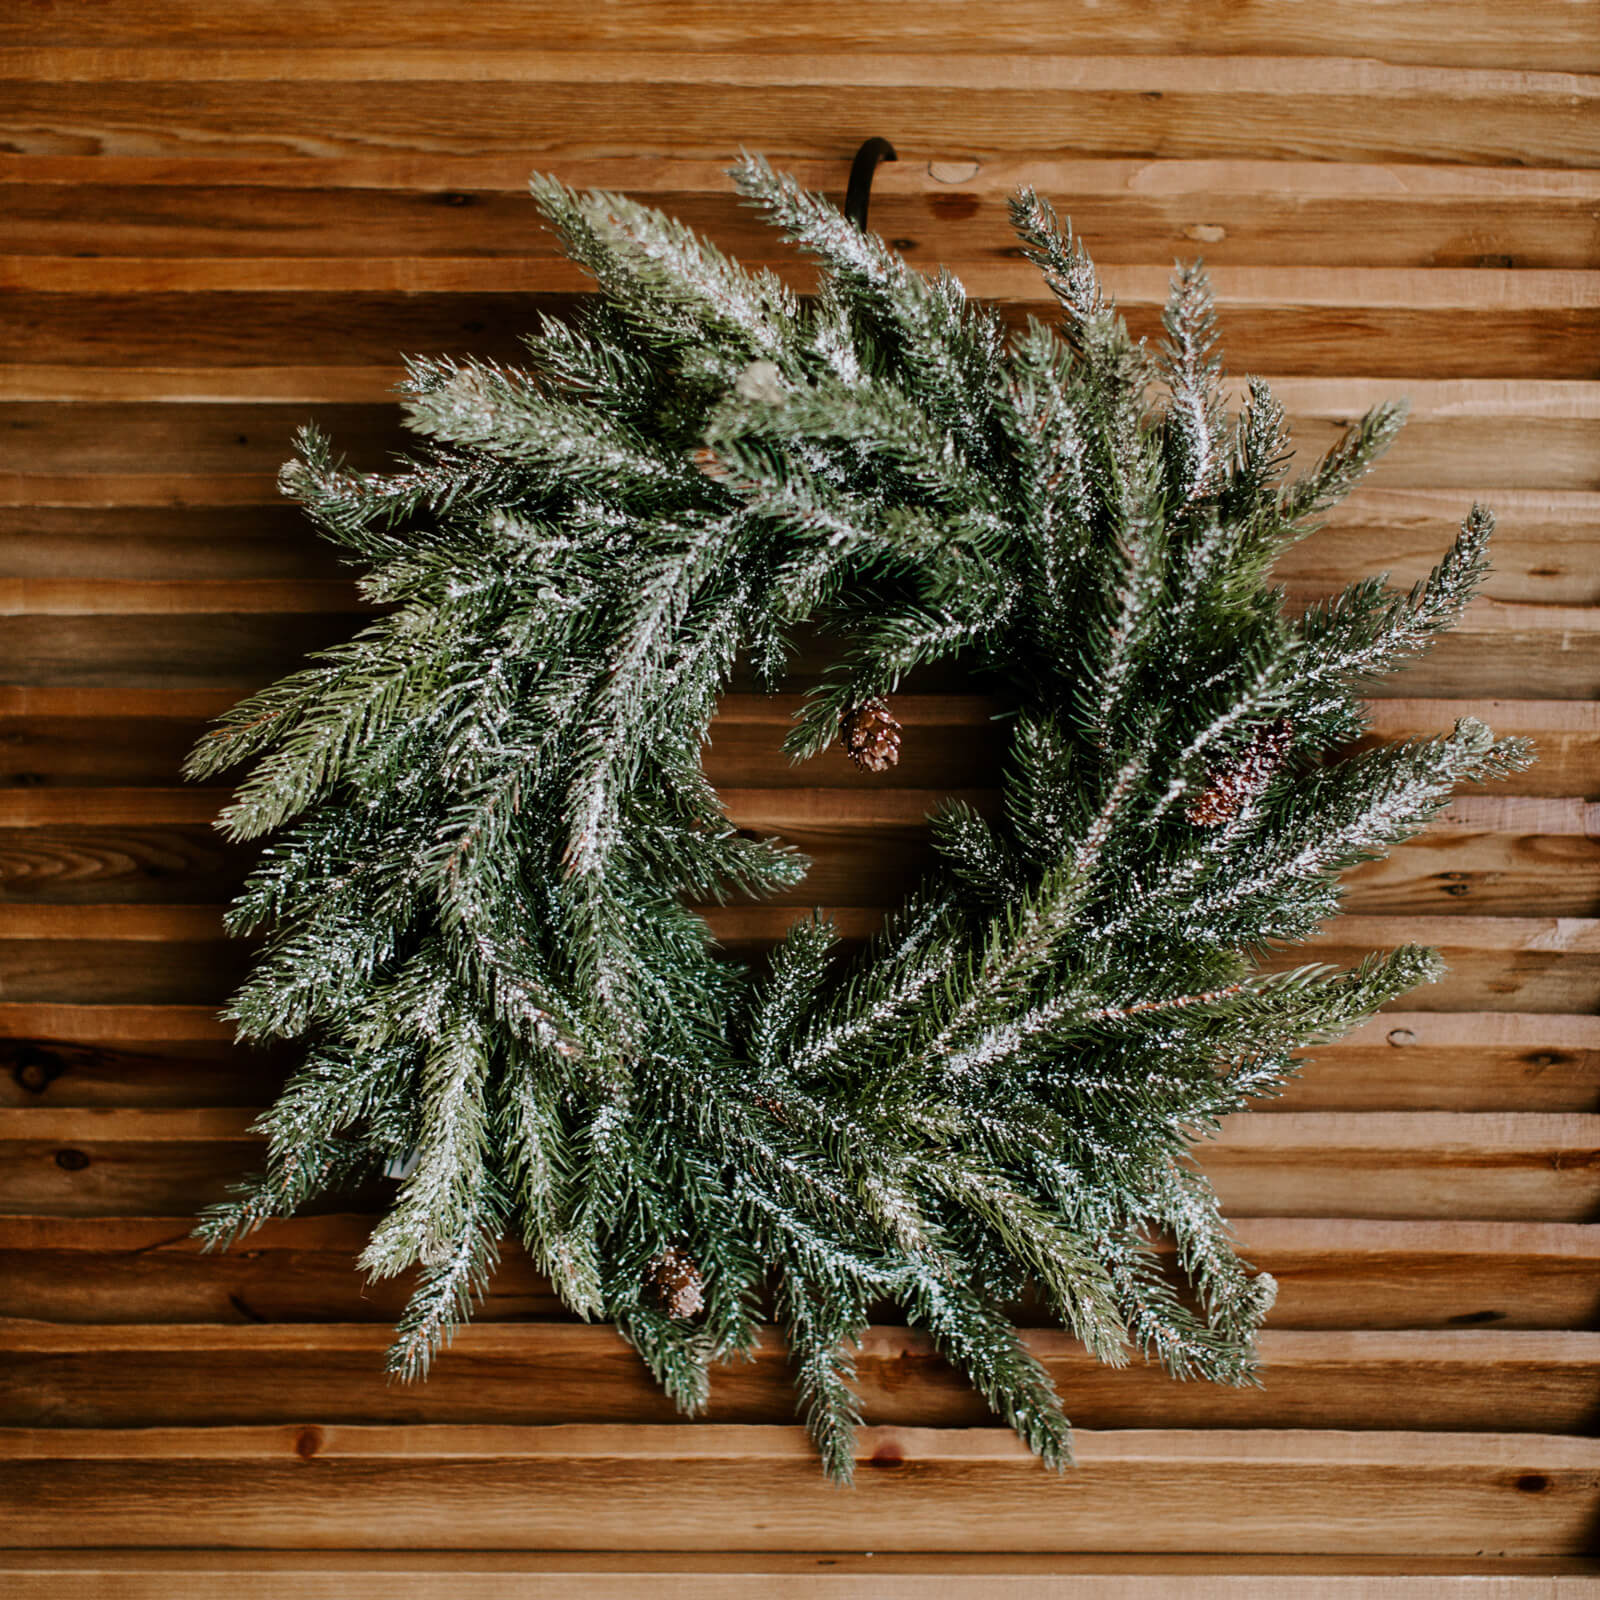 A 17 inch faux frosted pine wreath dusted in faux snow and adorned with real pinecones, hung on a wooden door for the holidays